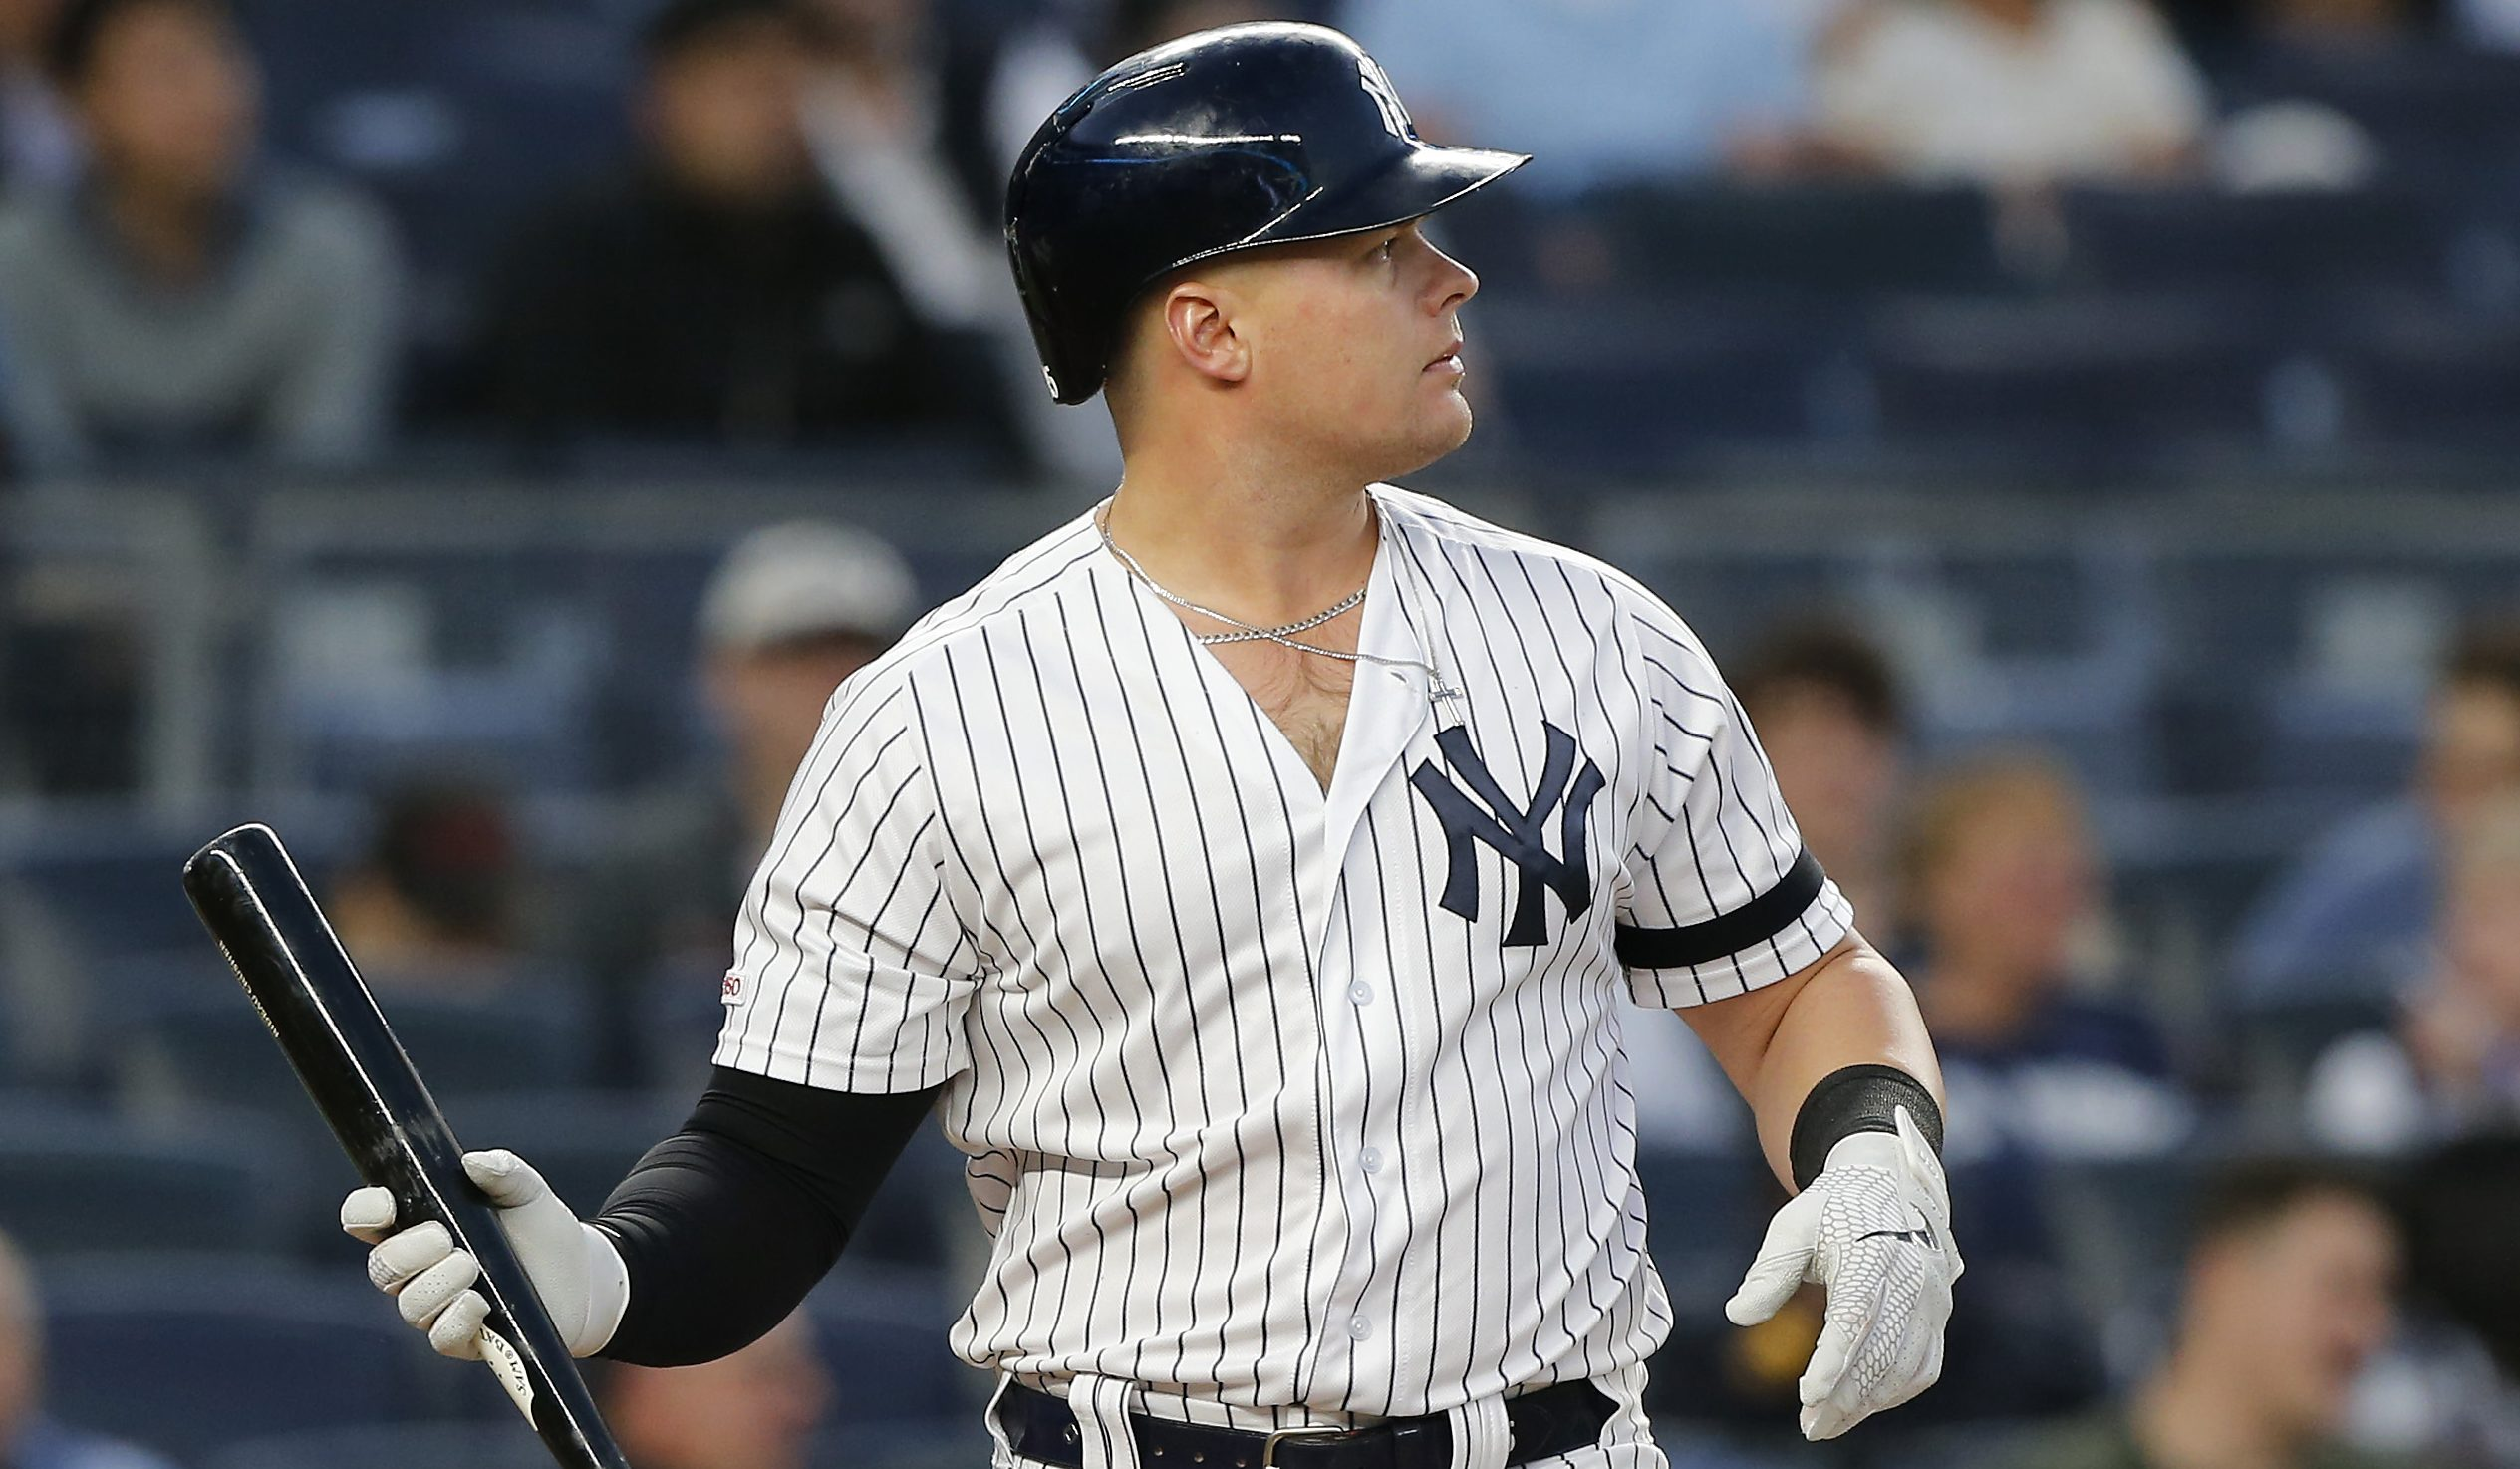 Luke Voit is in The Best Shape of His Life